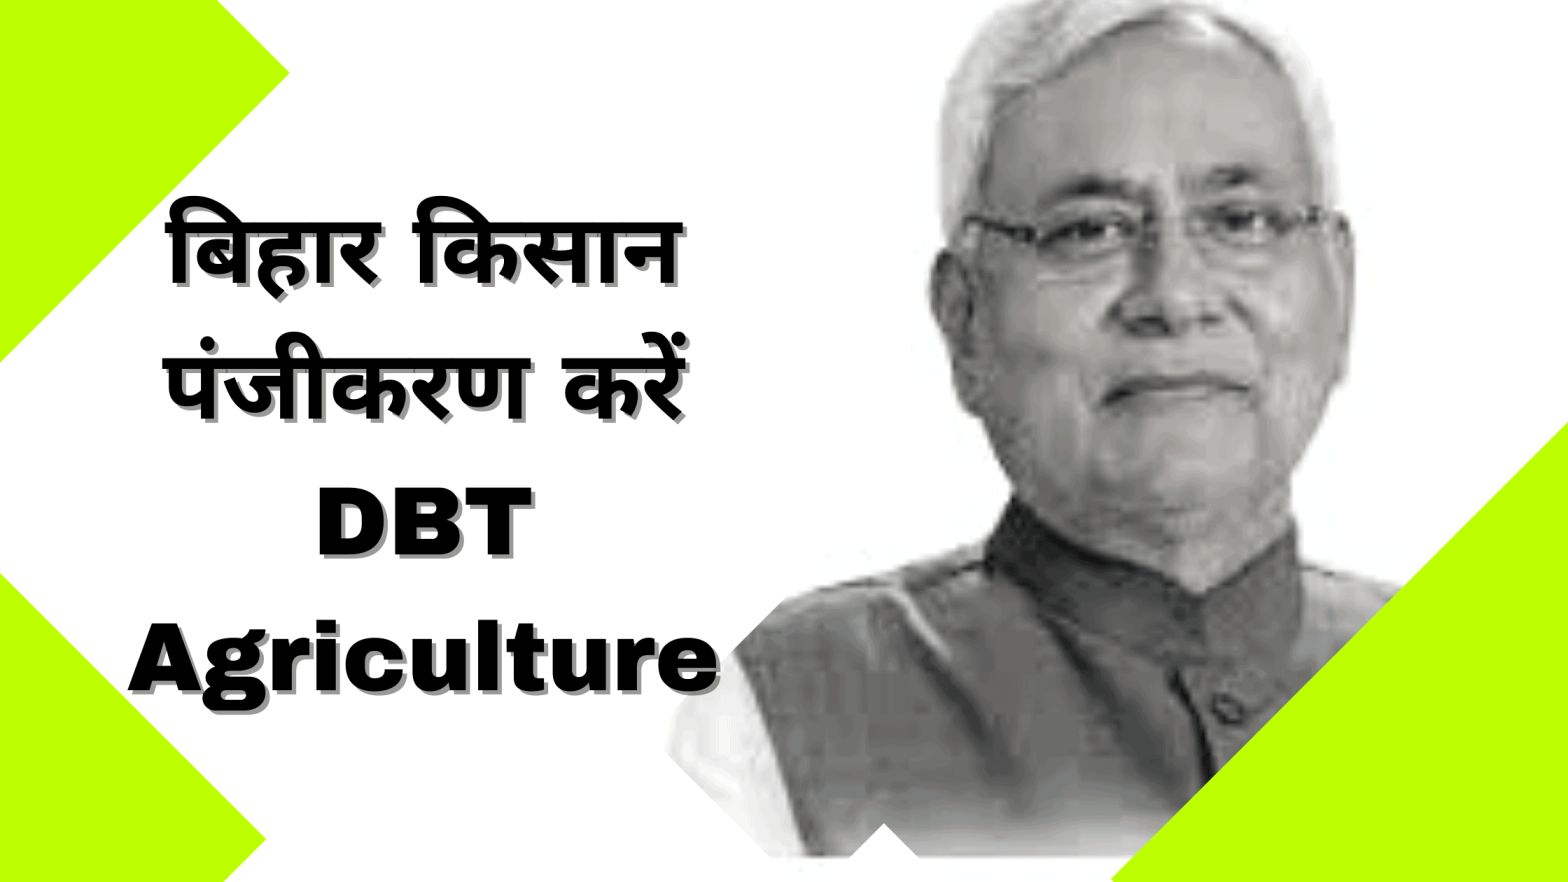 DBT Agriculture